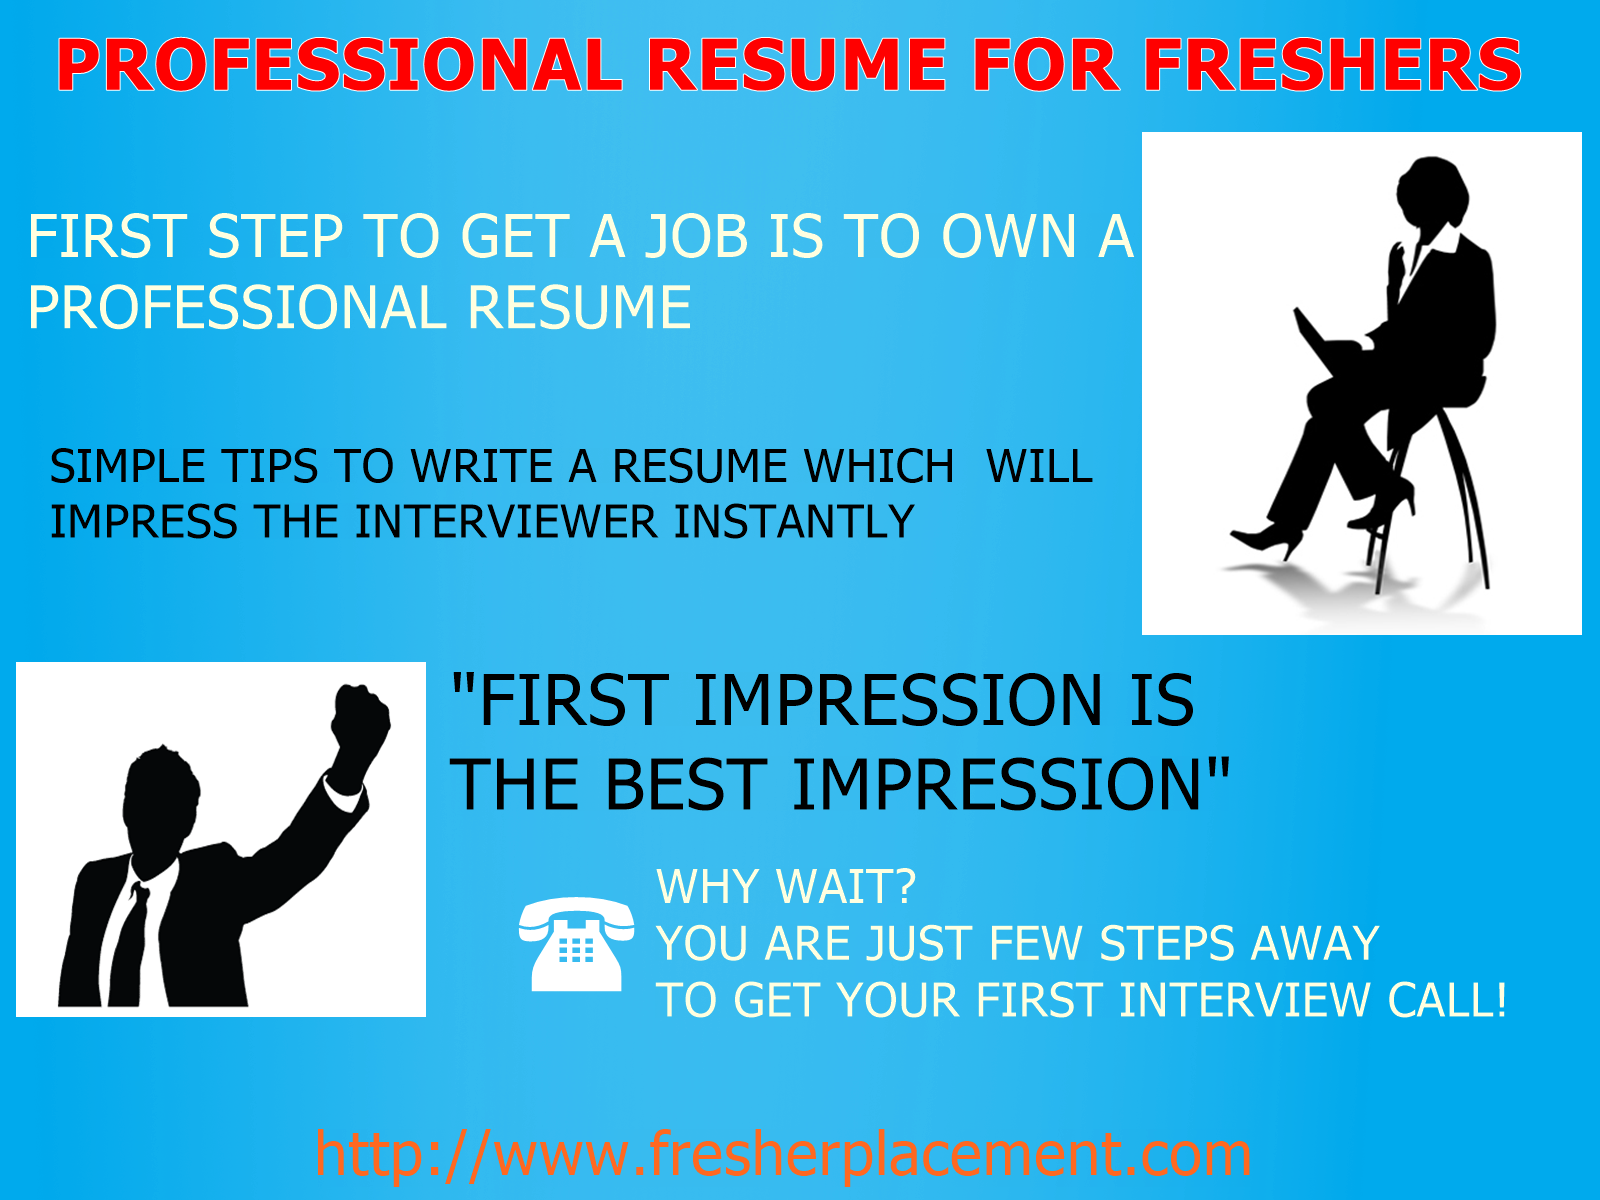 TIPS TO IMPRESS AN INDIAN HR IN THE 1ST INSTANTMAKING OF AN ELEGANT